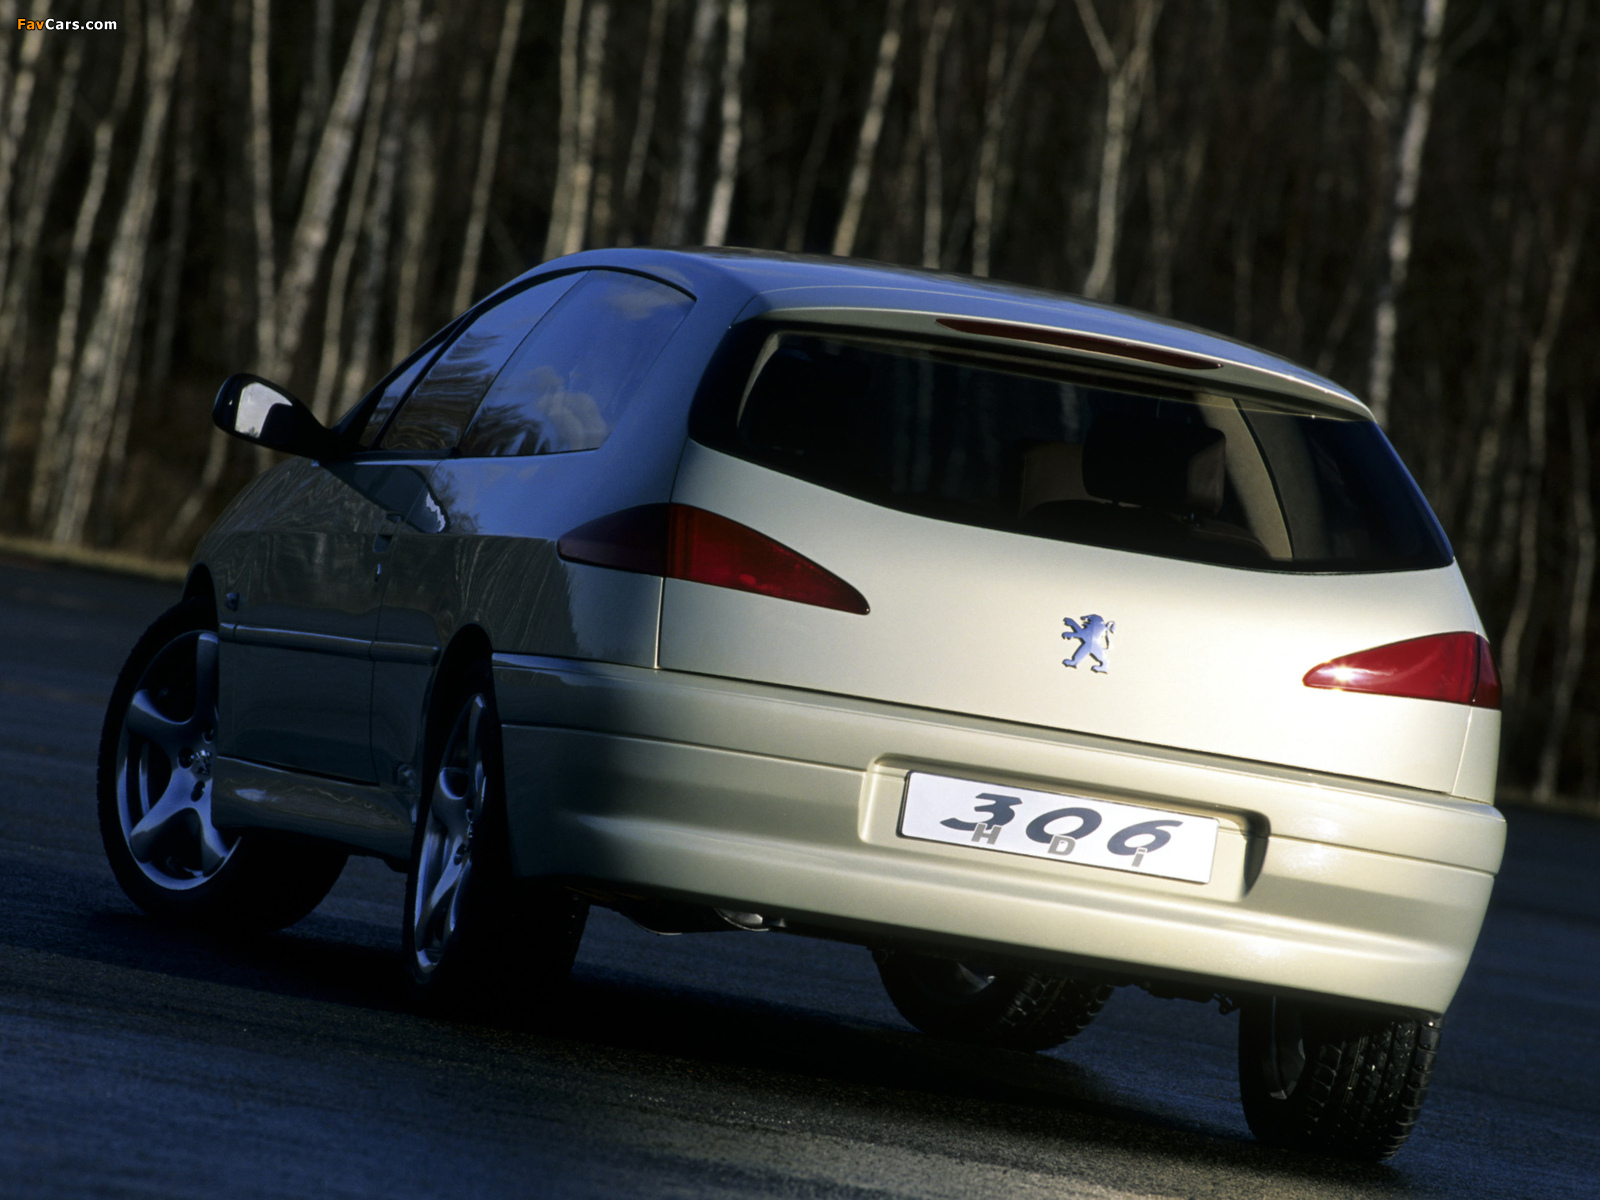 Peugeot 306 HDI Concept 1999 wallpapers (1600 x 1200)